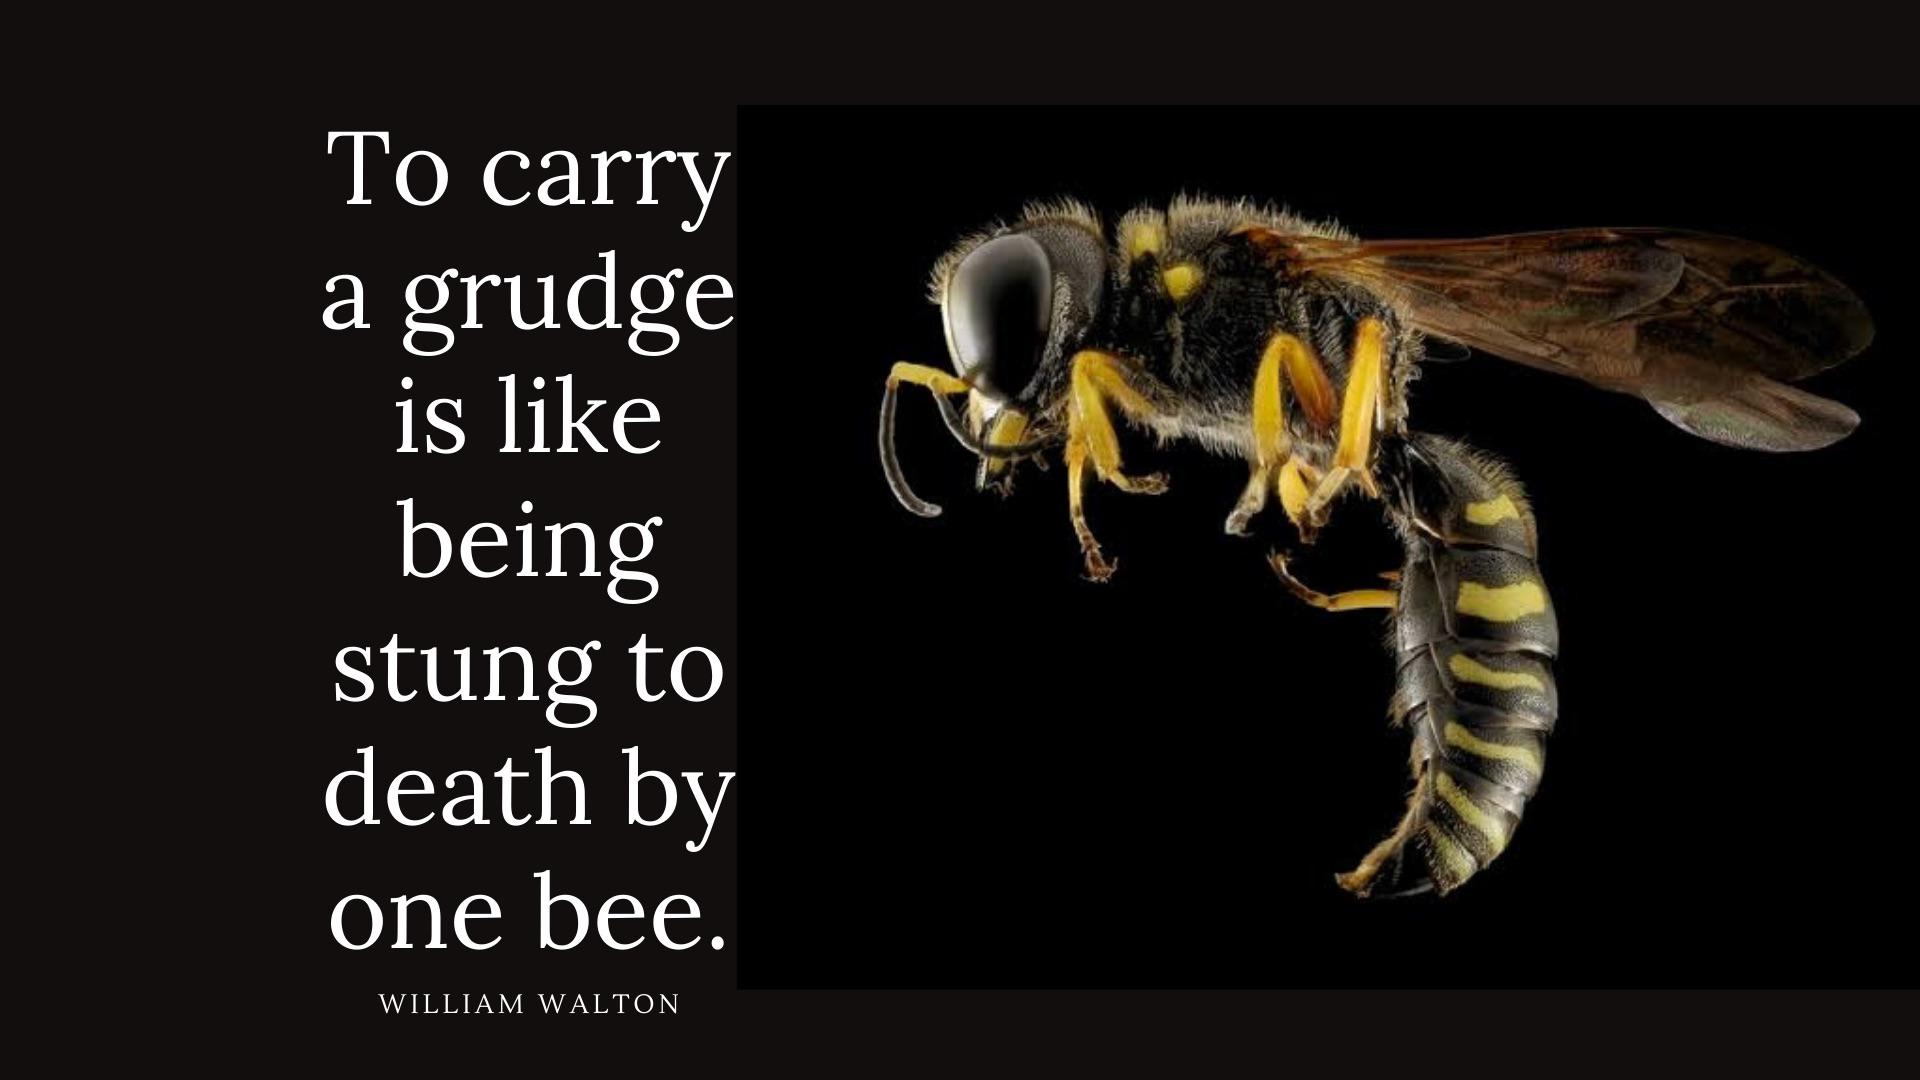 """To carry a grudge is like being stung to death by one bee"" – William Walton [1920×1080]"